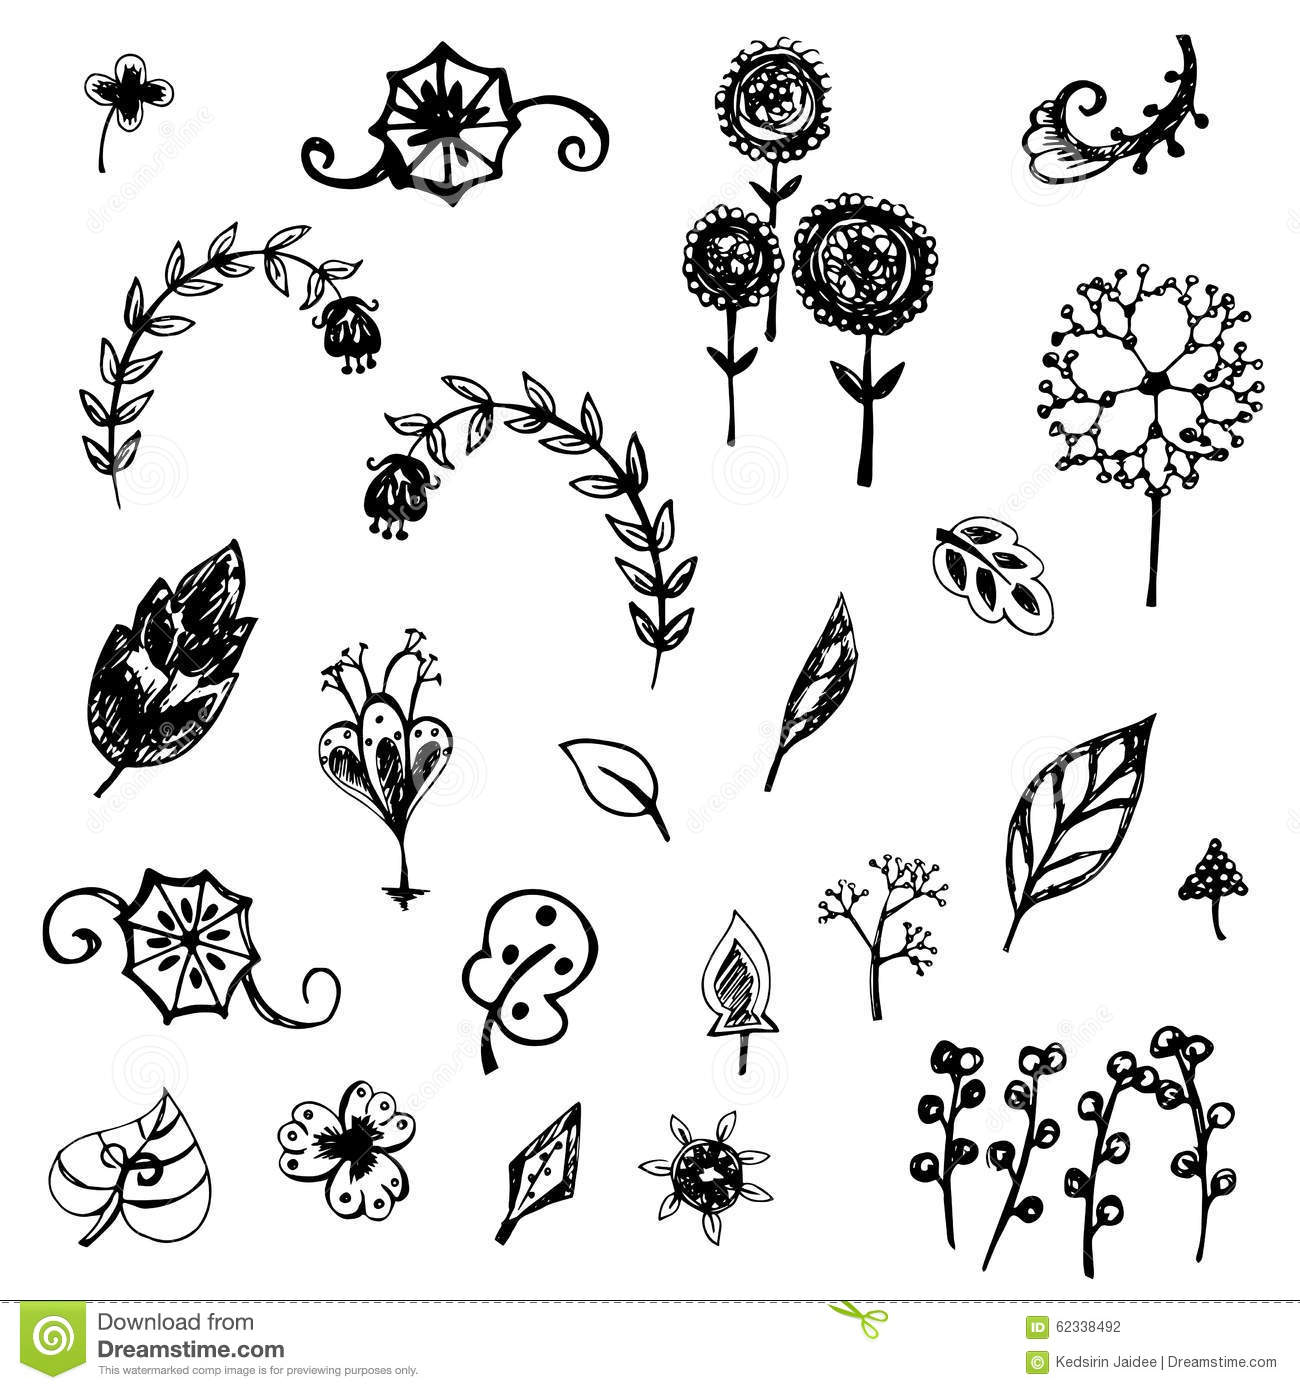 Cute flower and leaves sketch vector stock vector image for How to draw a cute flower